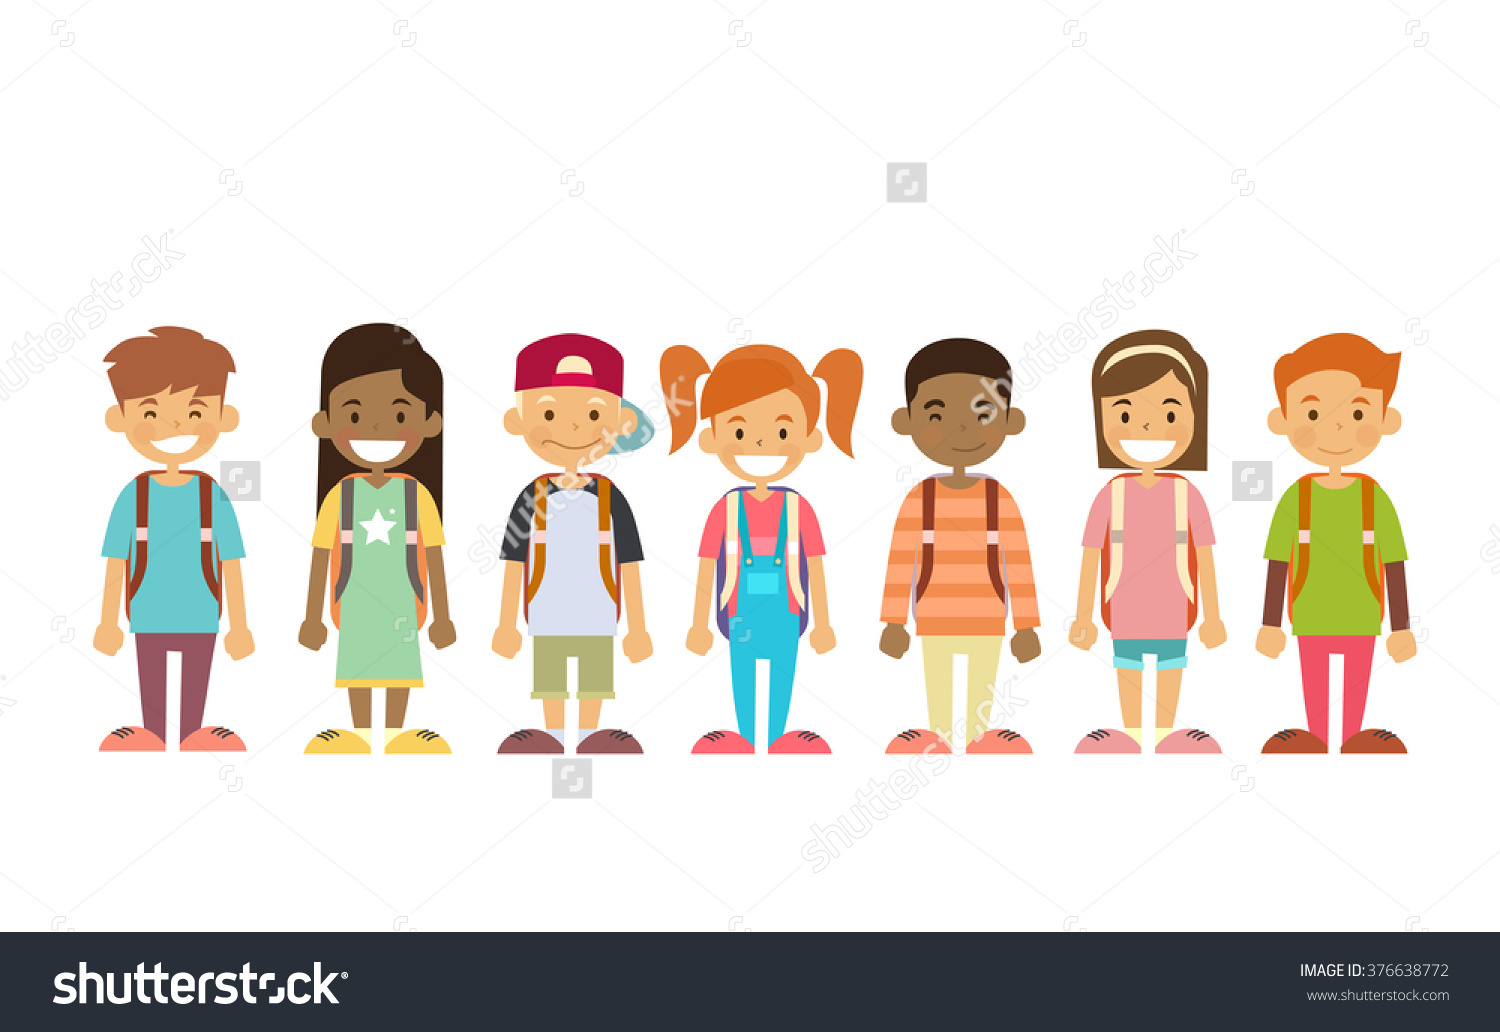 clipart kids in line - Clipground